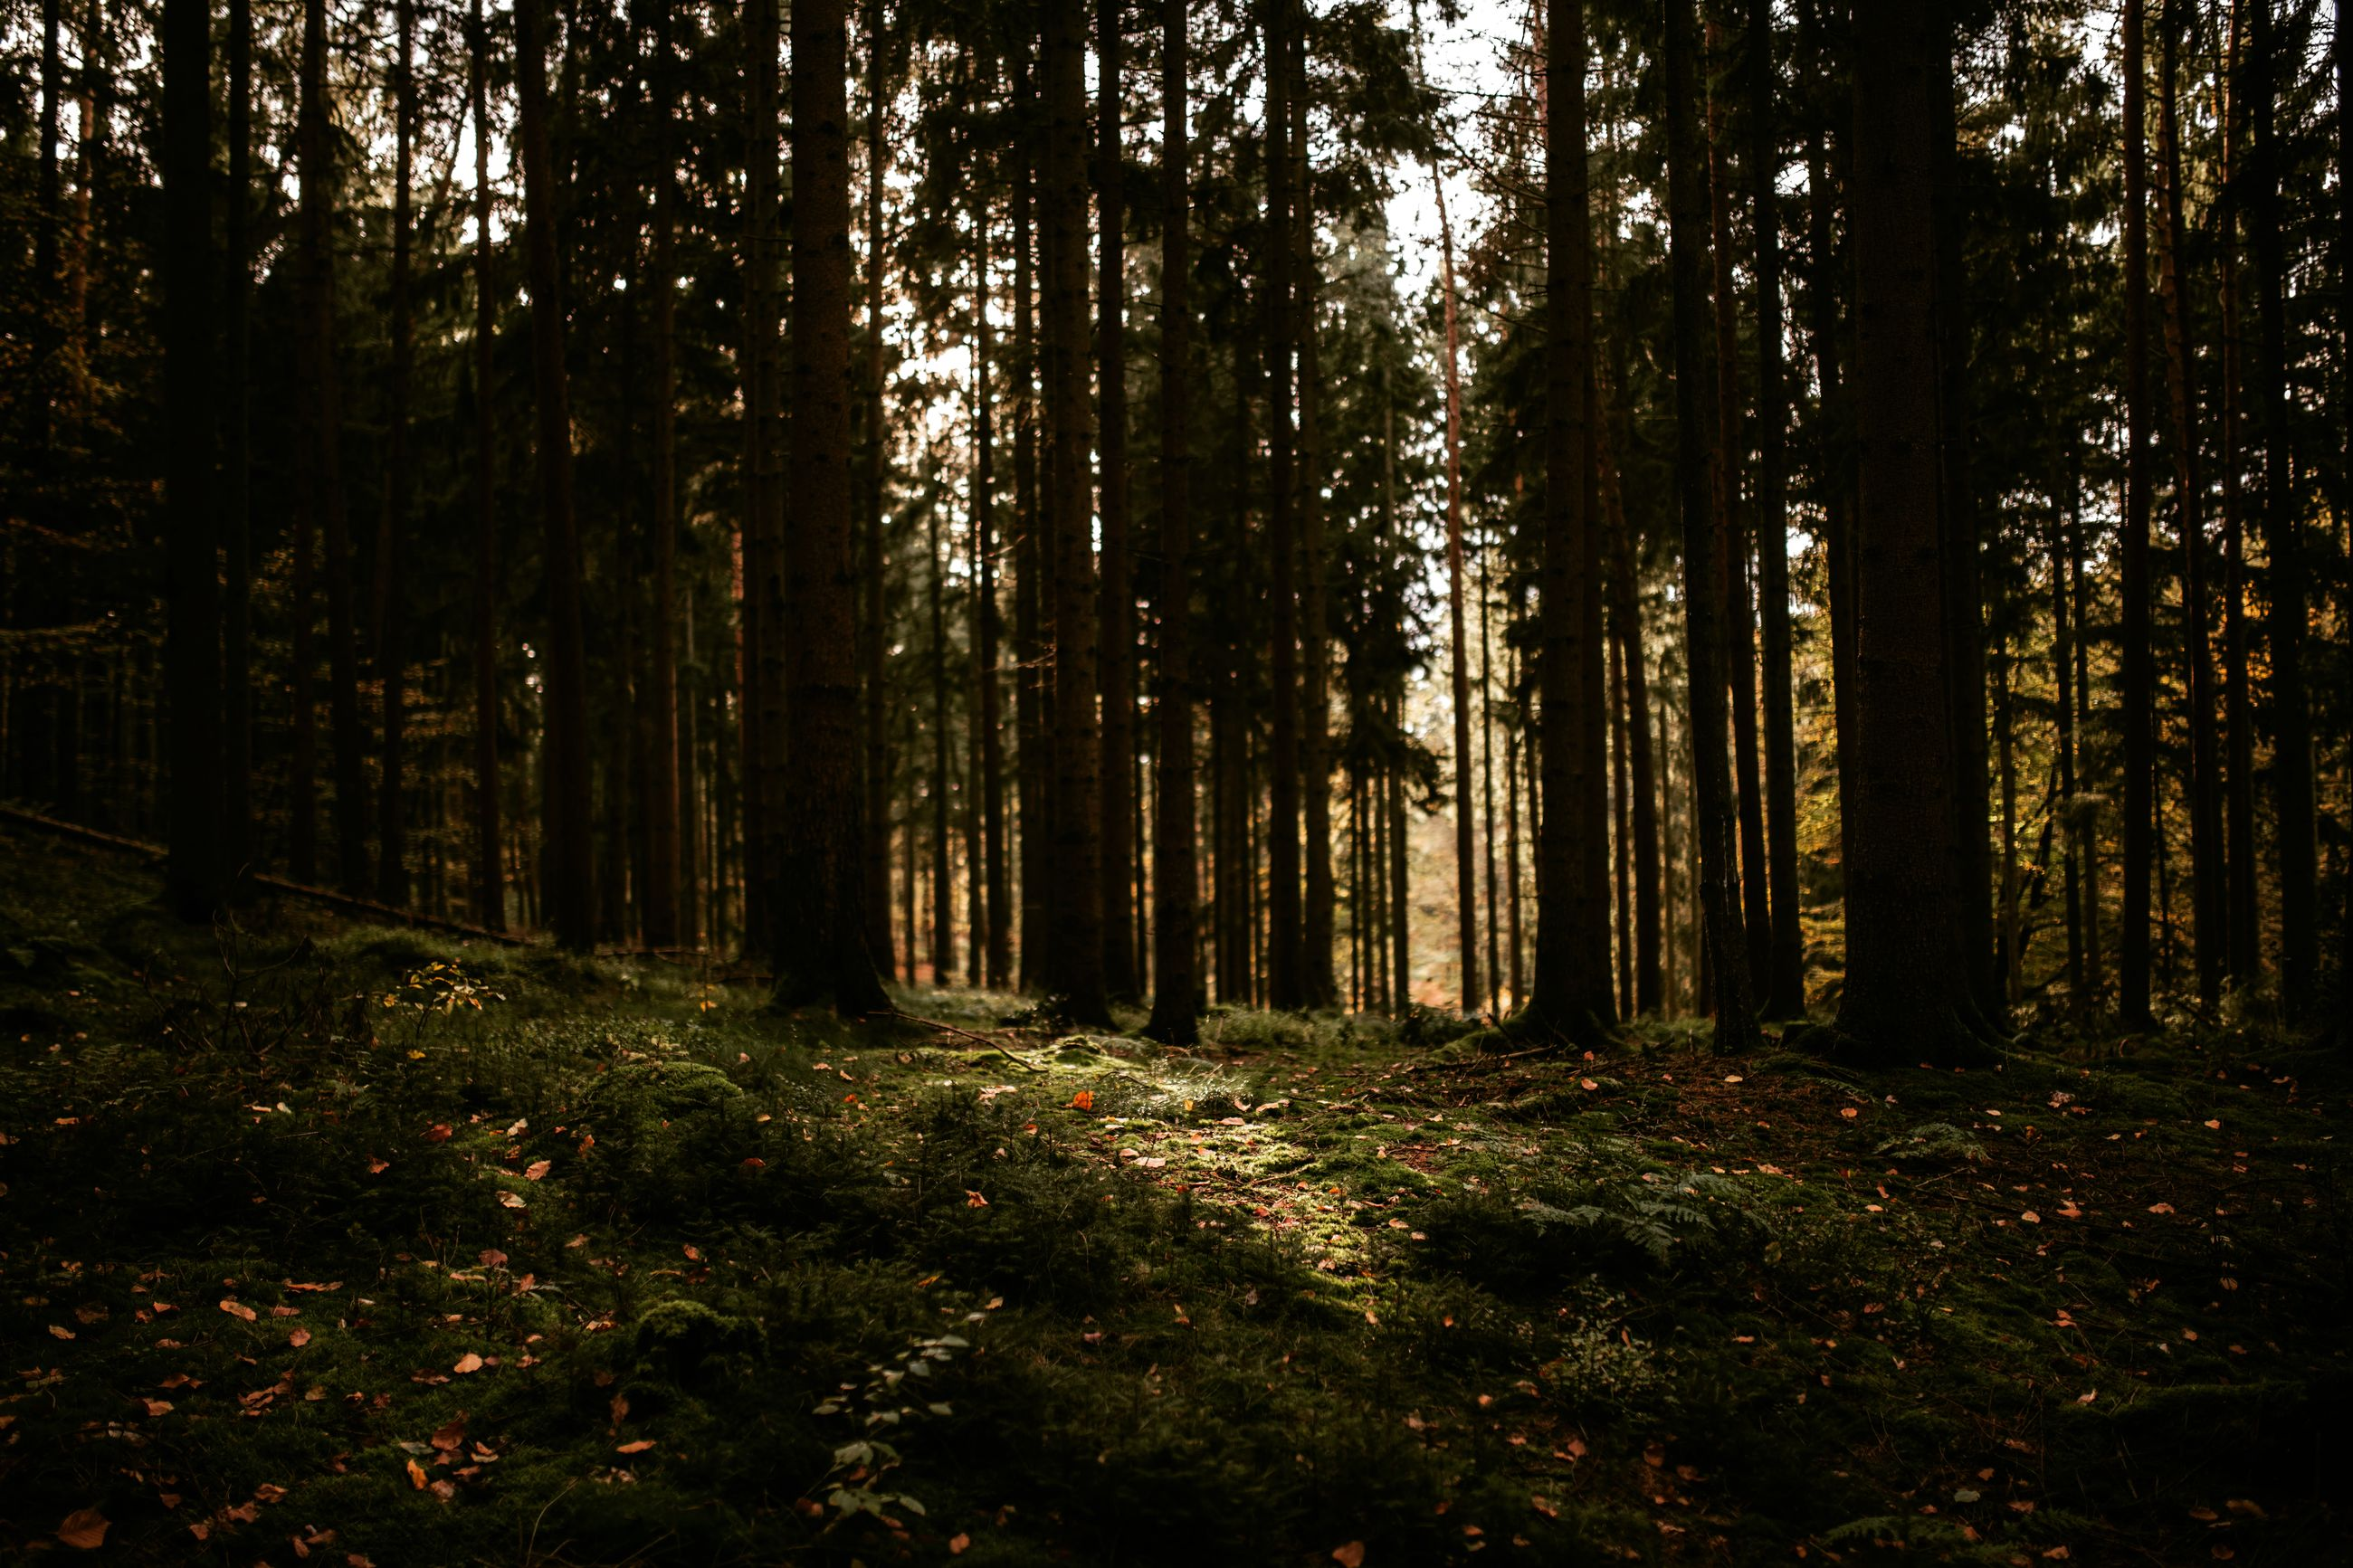 forest, tree, land, plant, woodland, tranquility, nature, growth, day, no people, tree trunk, trunk, beauty in nature, tranquil scene, non-urban scene, sunlight, outdoors, green color, scenics - nature, landscape